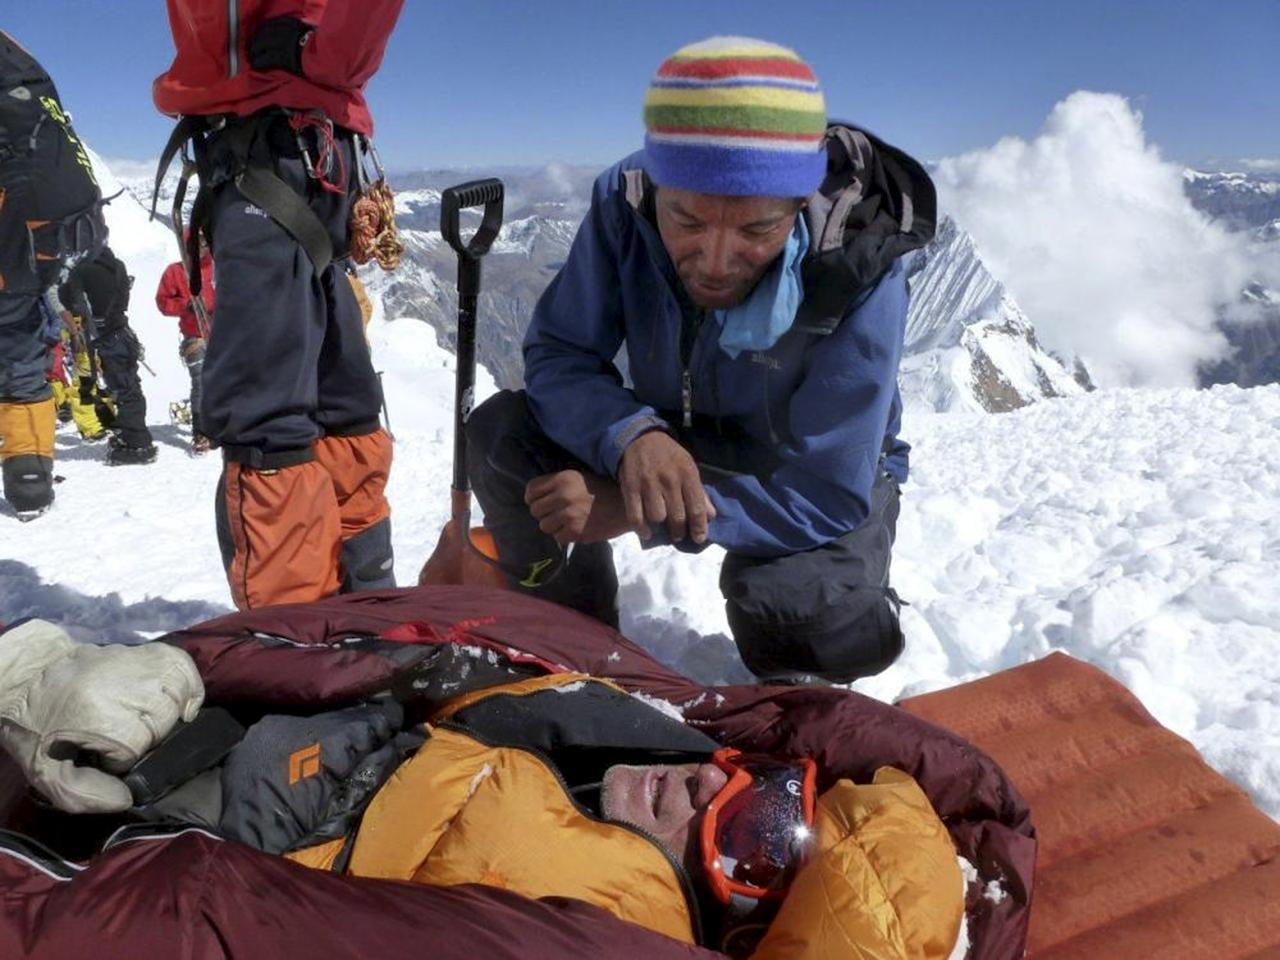 In this picture taken Sunday, Sept. 23, 2012 and released by Alpine Ascents International, an unidentified rescuer speaks to an unidentified survivor in the debris field of an avalanche on Mount Manaslu in northern Nepal. Rescue helicopters flew over the high slopes of the northern Nepal peak again Monday to search for climbers lost in an avalanche that killed at least nine mountaineers and injured others. Many of the climbers were French, German and Italian. (AP Photo/Garrett Madison, Alpine Ascents International)